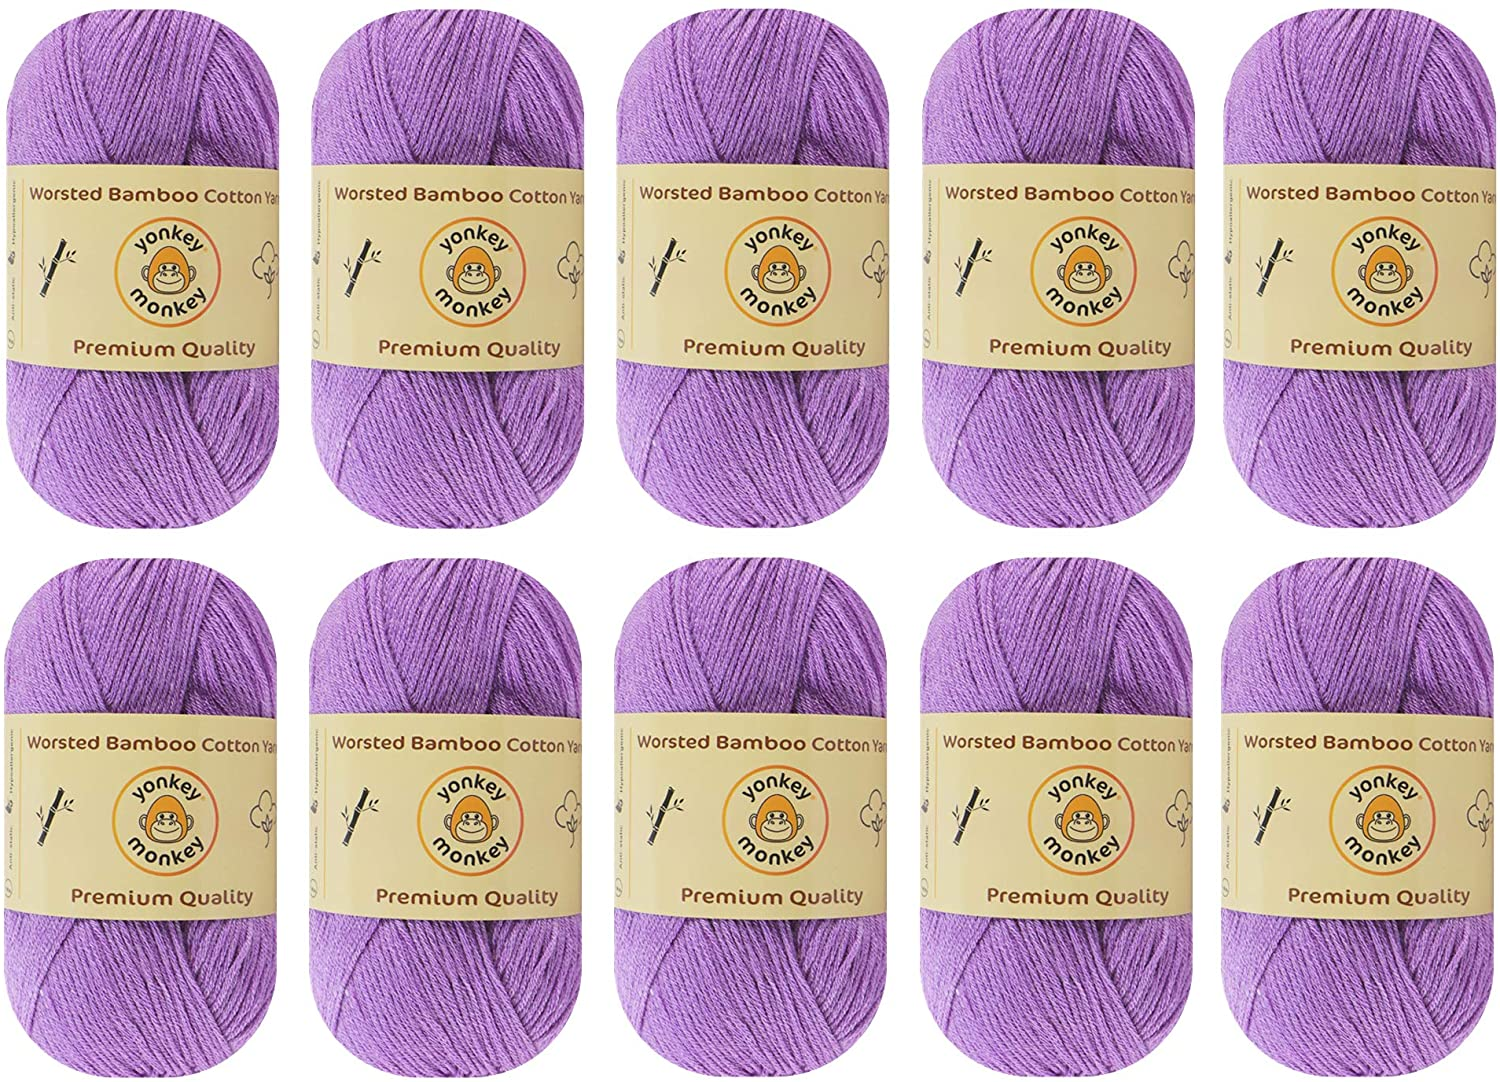 Yonkey Monkey Skein Tencel Yarn - 70% Bamboo, 30% Cotton - Softest Quality Crocheting, Knitting Supplies - Lightweight and Breathable Fabric Threads - 10-Pack Set, 210 Meters (Purple 9029)